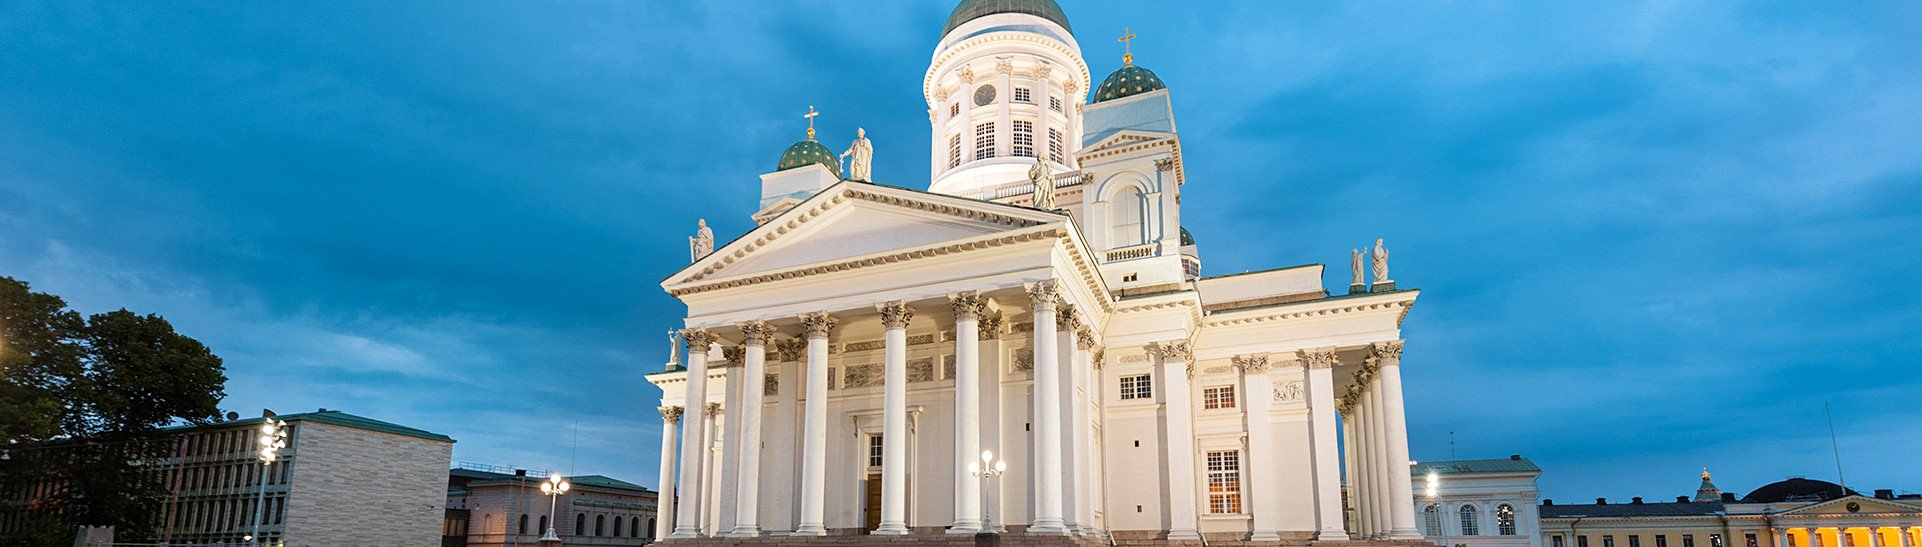 See the most famous Helsinki attractions, including the Helsinki Cathedral, on your Finland tour